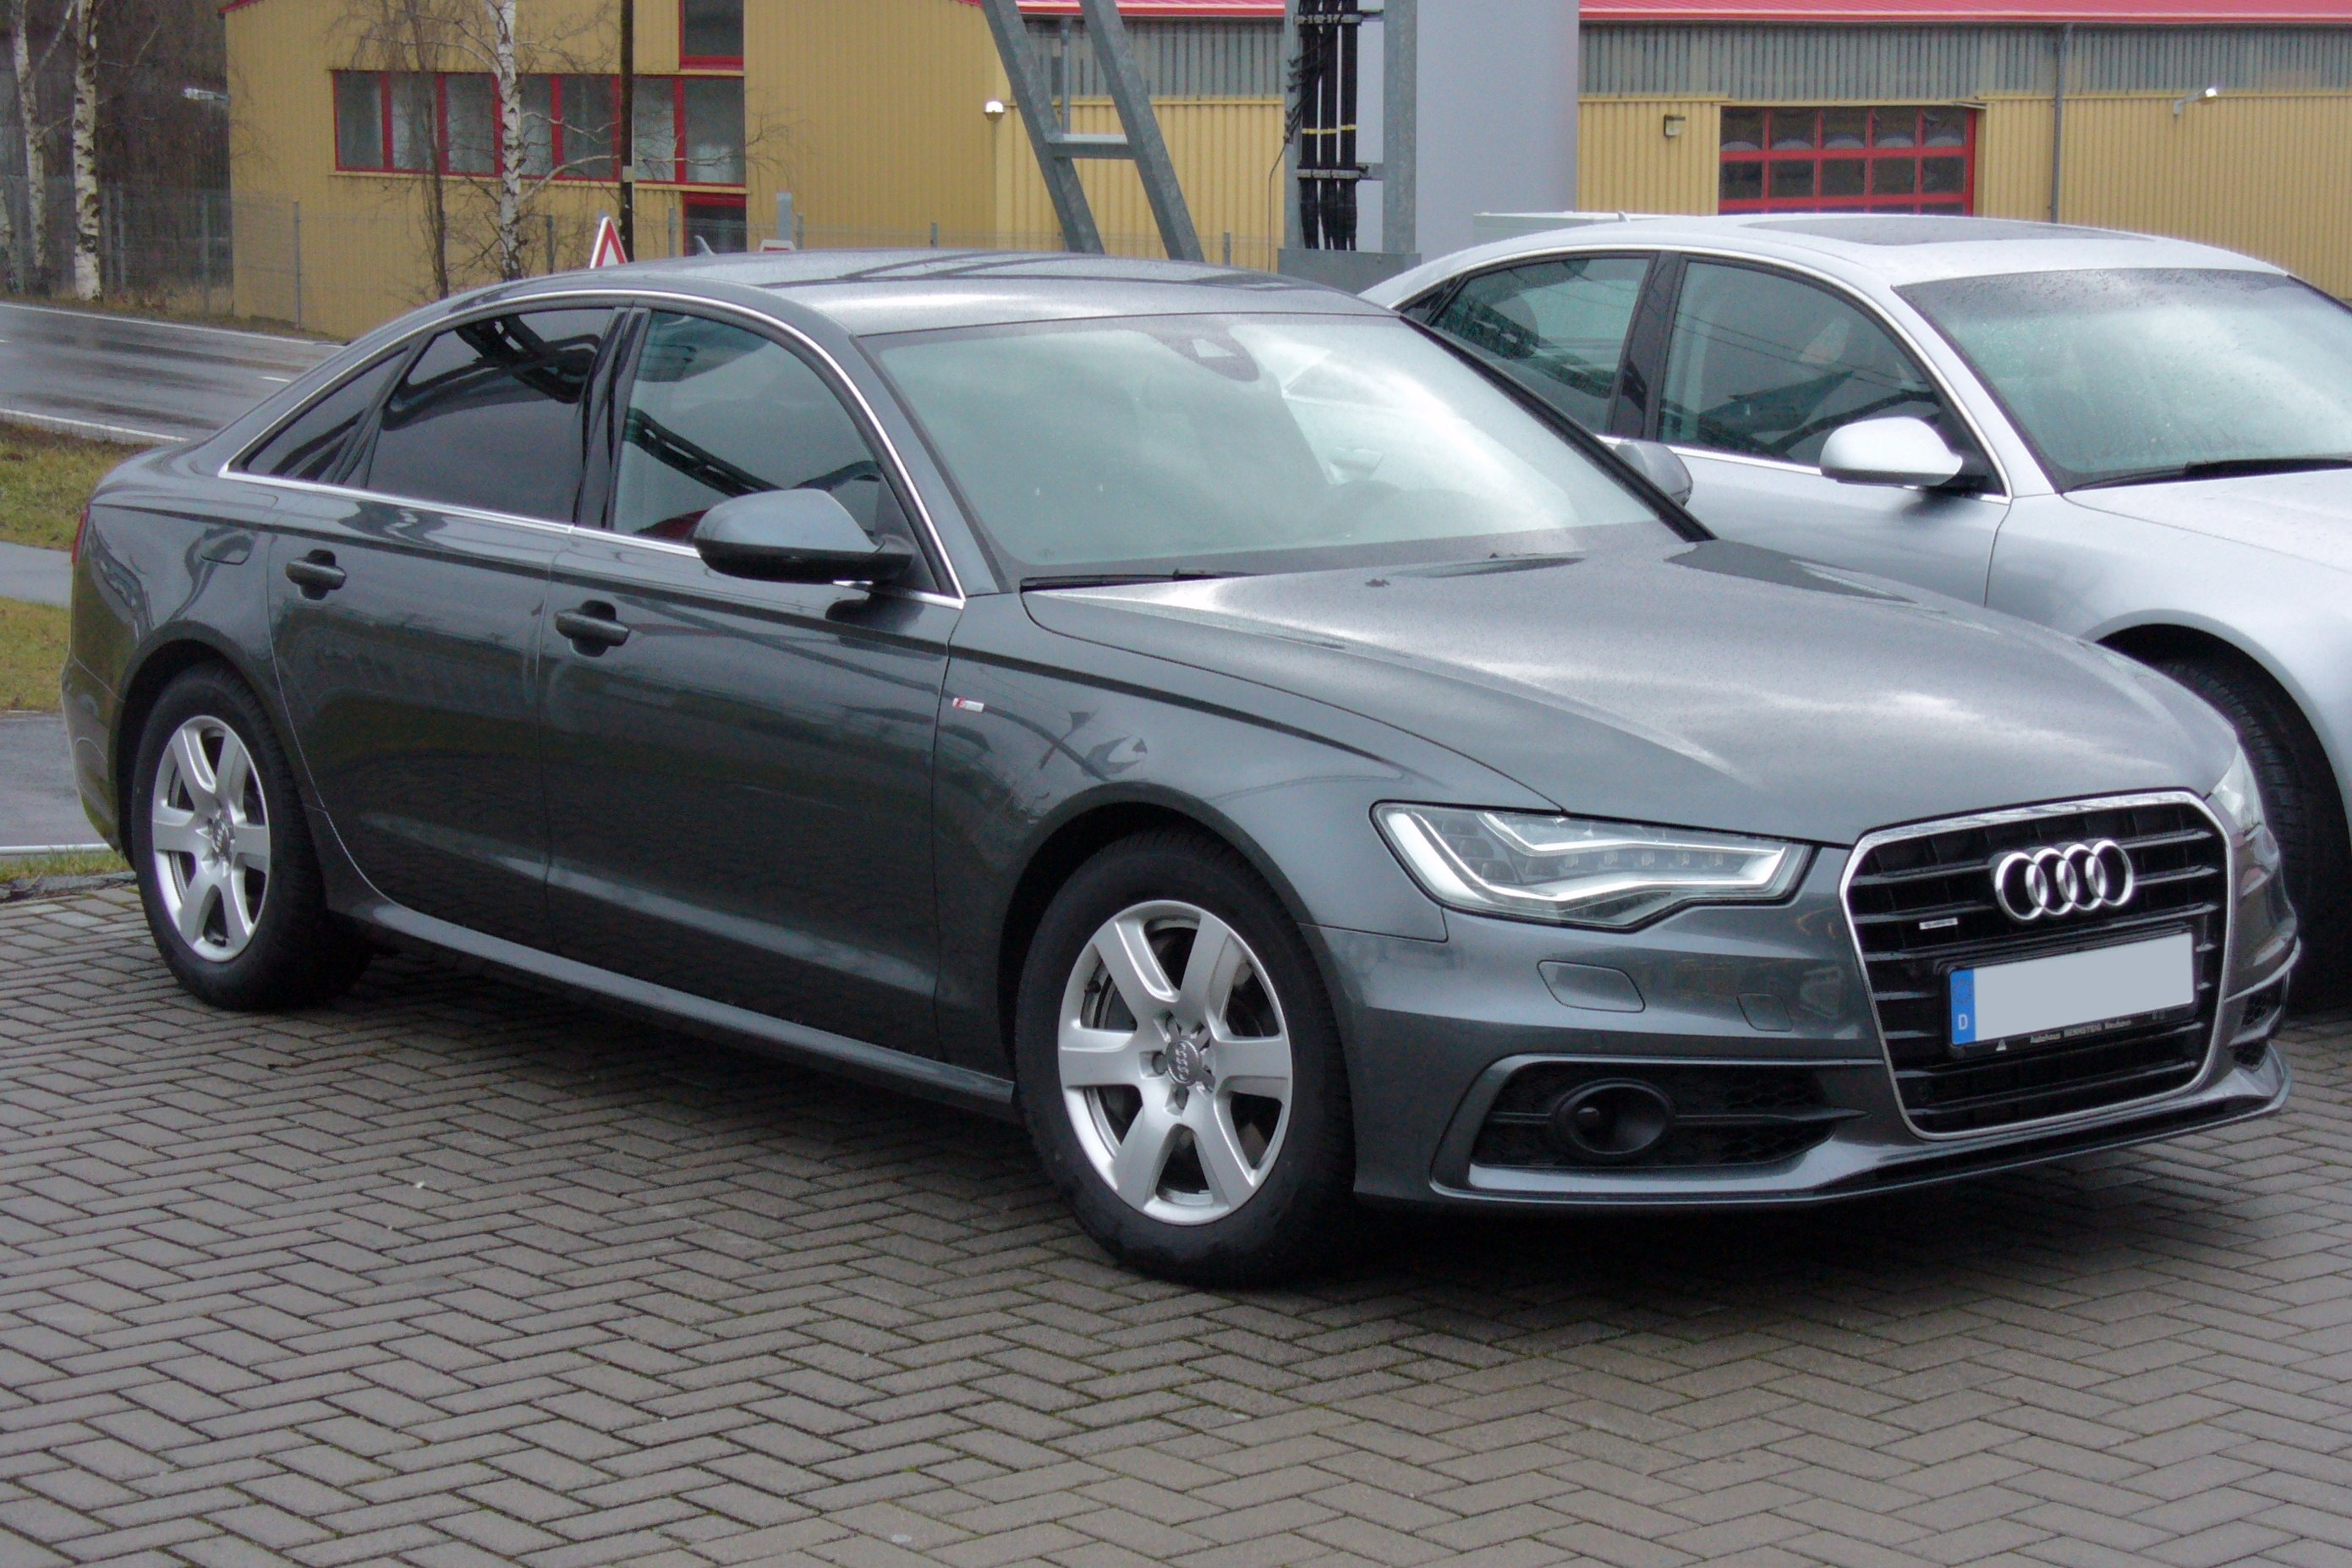 2012 Audi A6 (c7) – pictures, information and specs - Auto ...